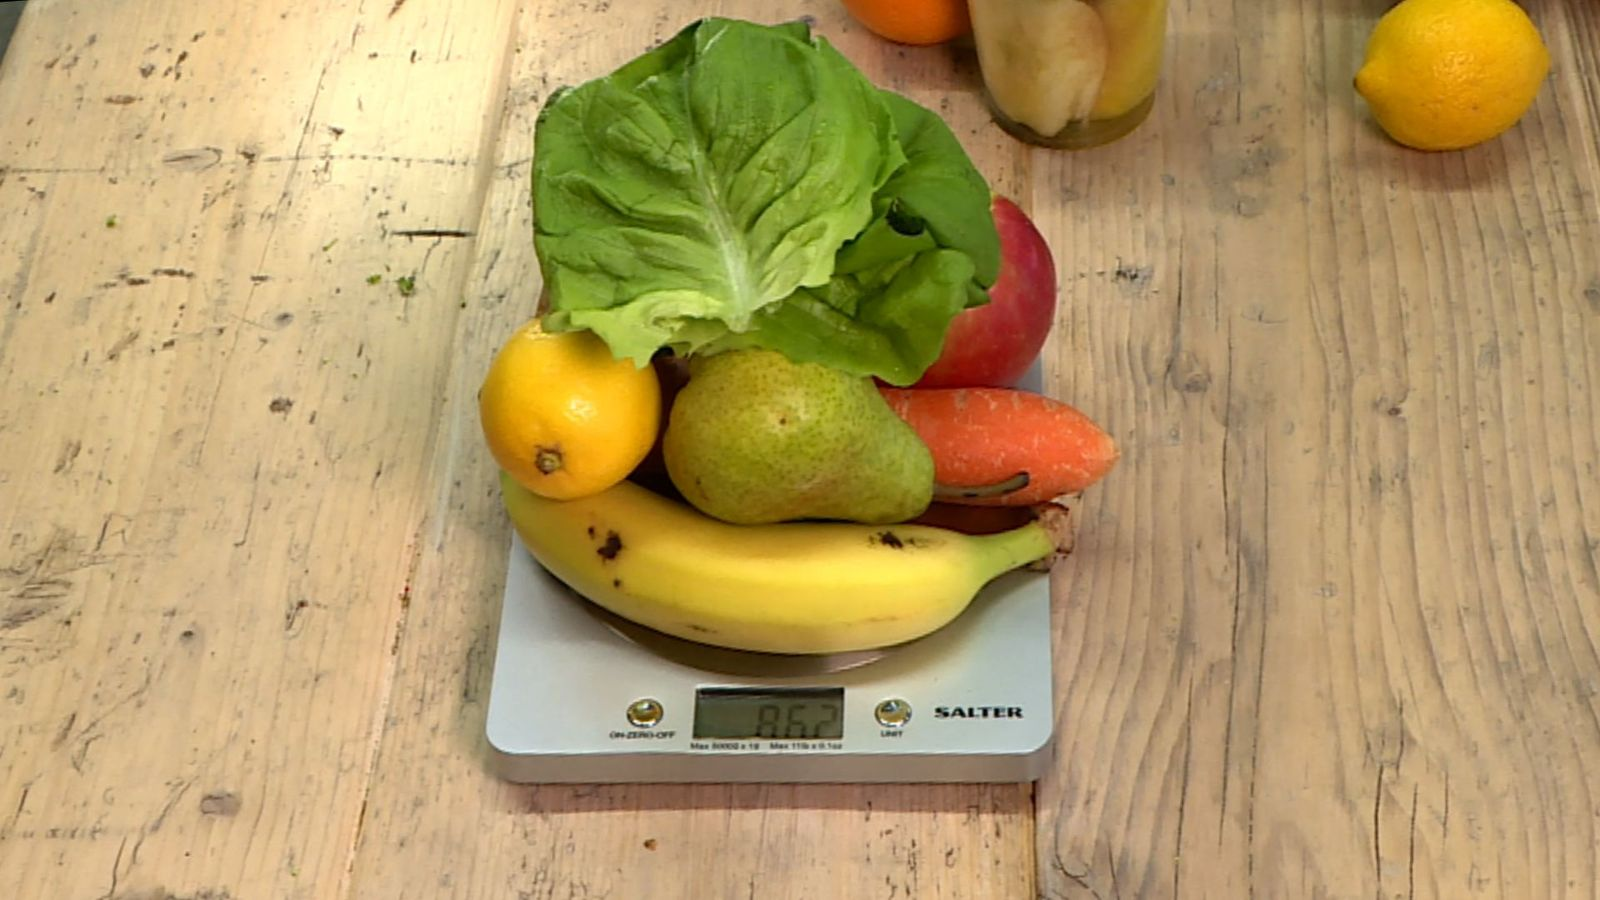 More wonky veg should be sold to cut food waste